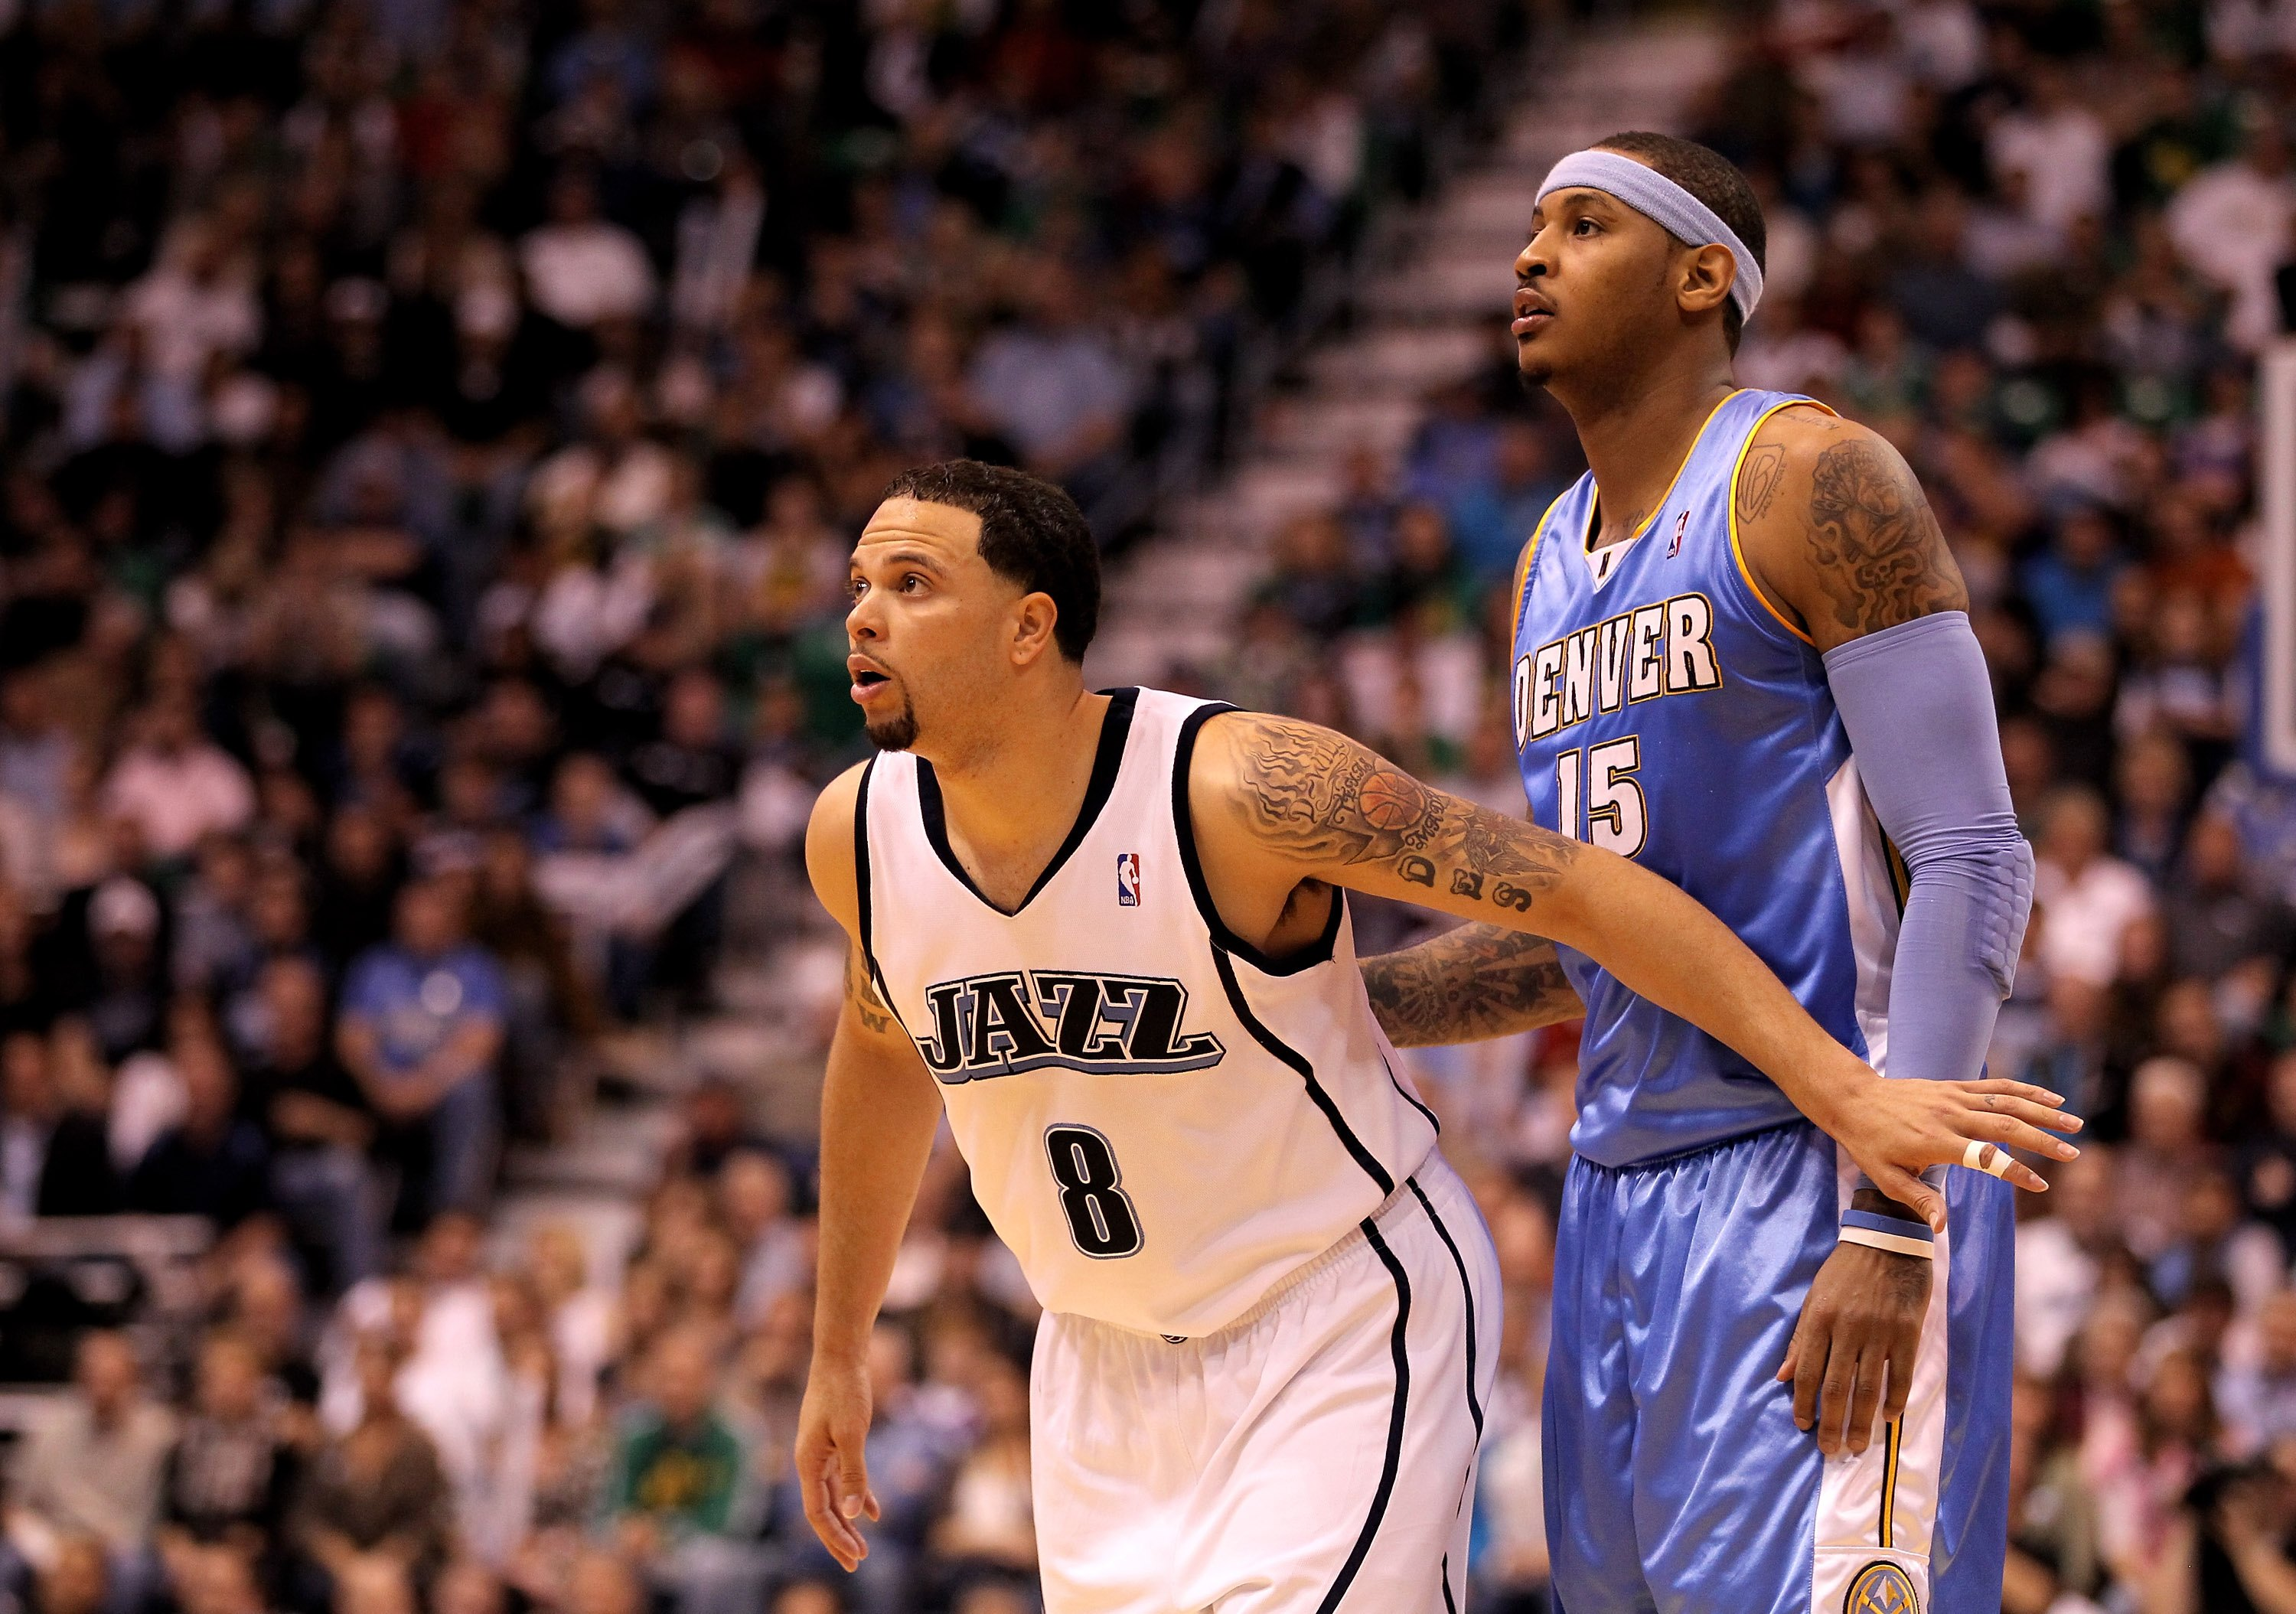 SALT LAKE CITY - APRIL 30:  Deron Williams #8 of the Utah Jazz boxes out Carmelo Anthony #15 of the Denver Nuggets in Game Six of the Western Conference Quarterfinals of the 2010 NBA Playoffs at EnergySolutions Arena on April 30, 2010 in Salt Lake City, U